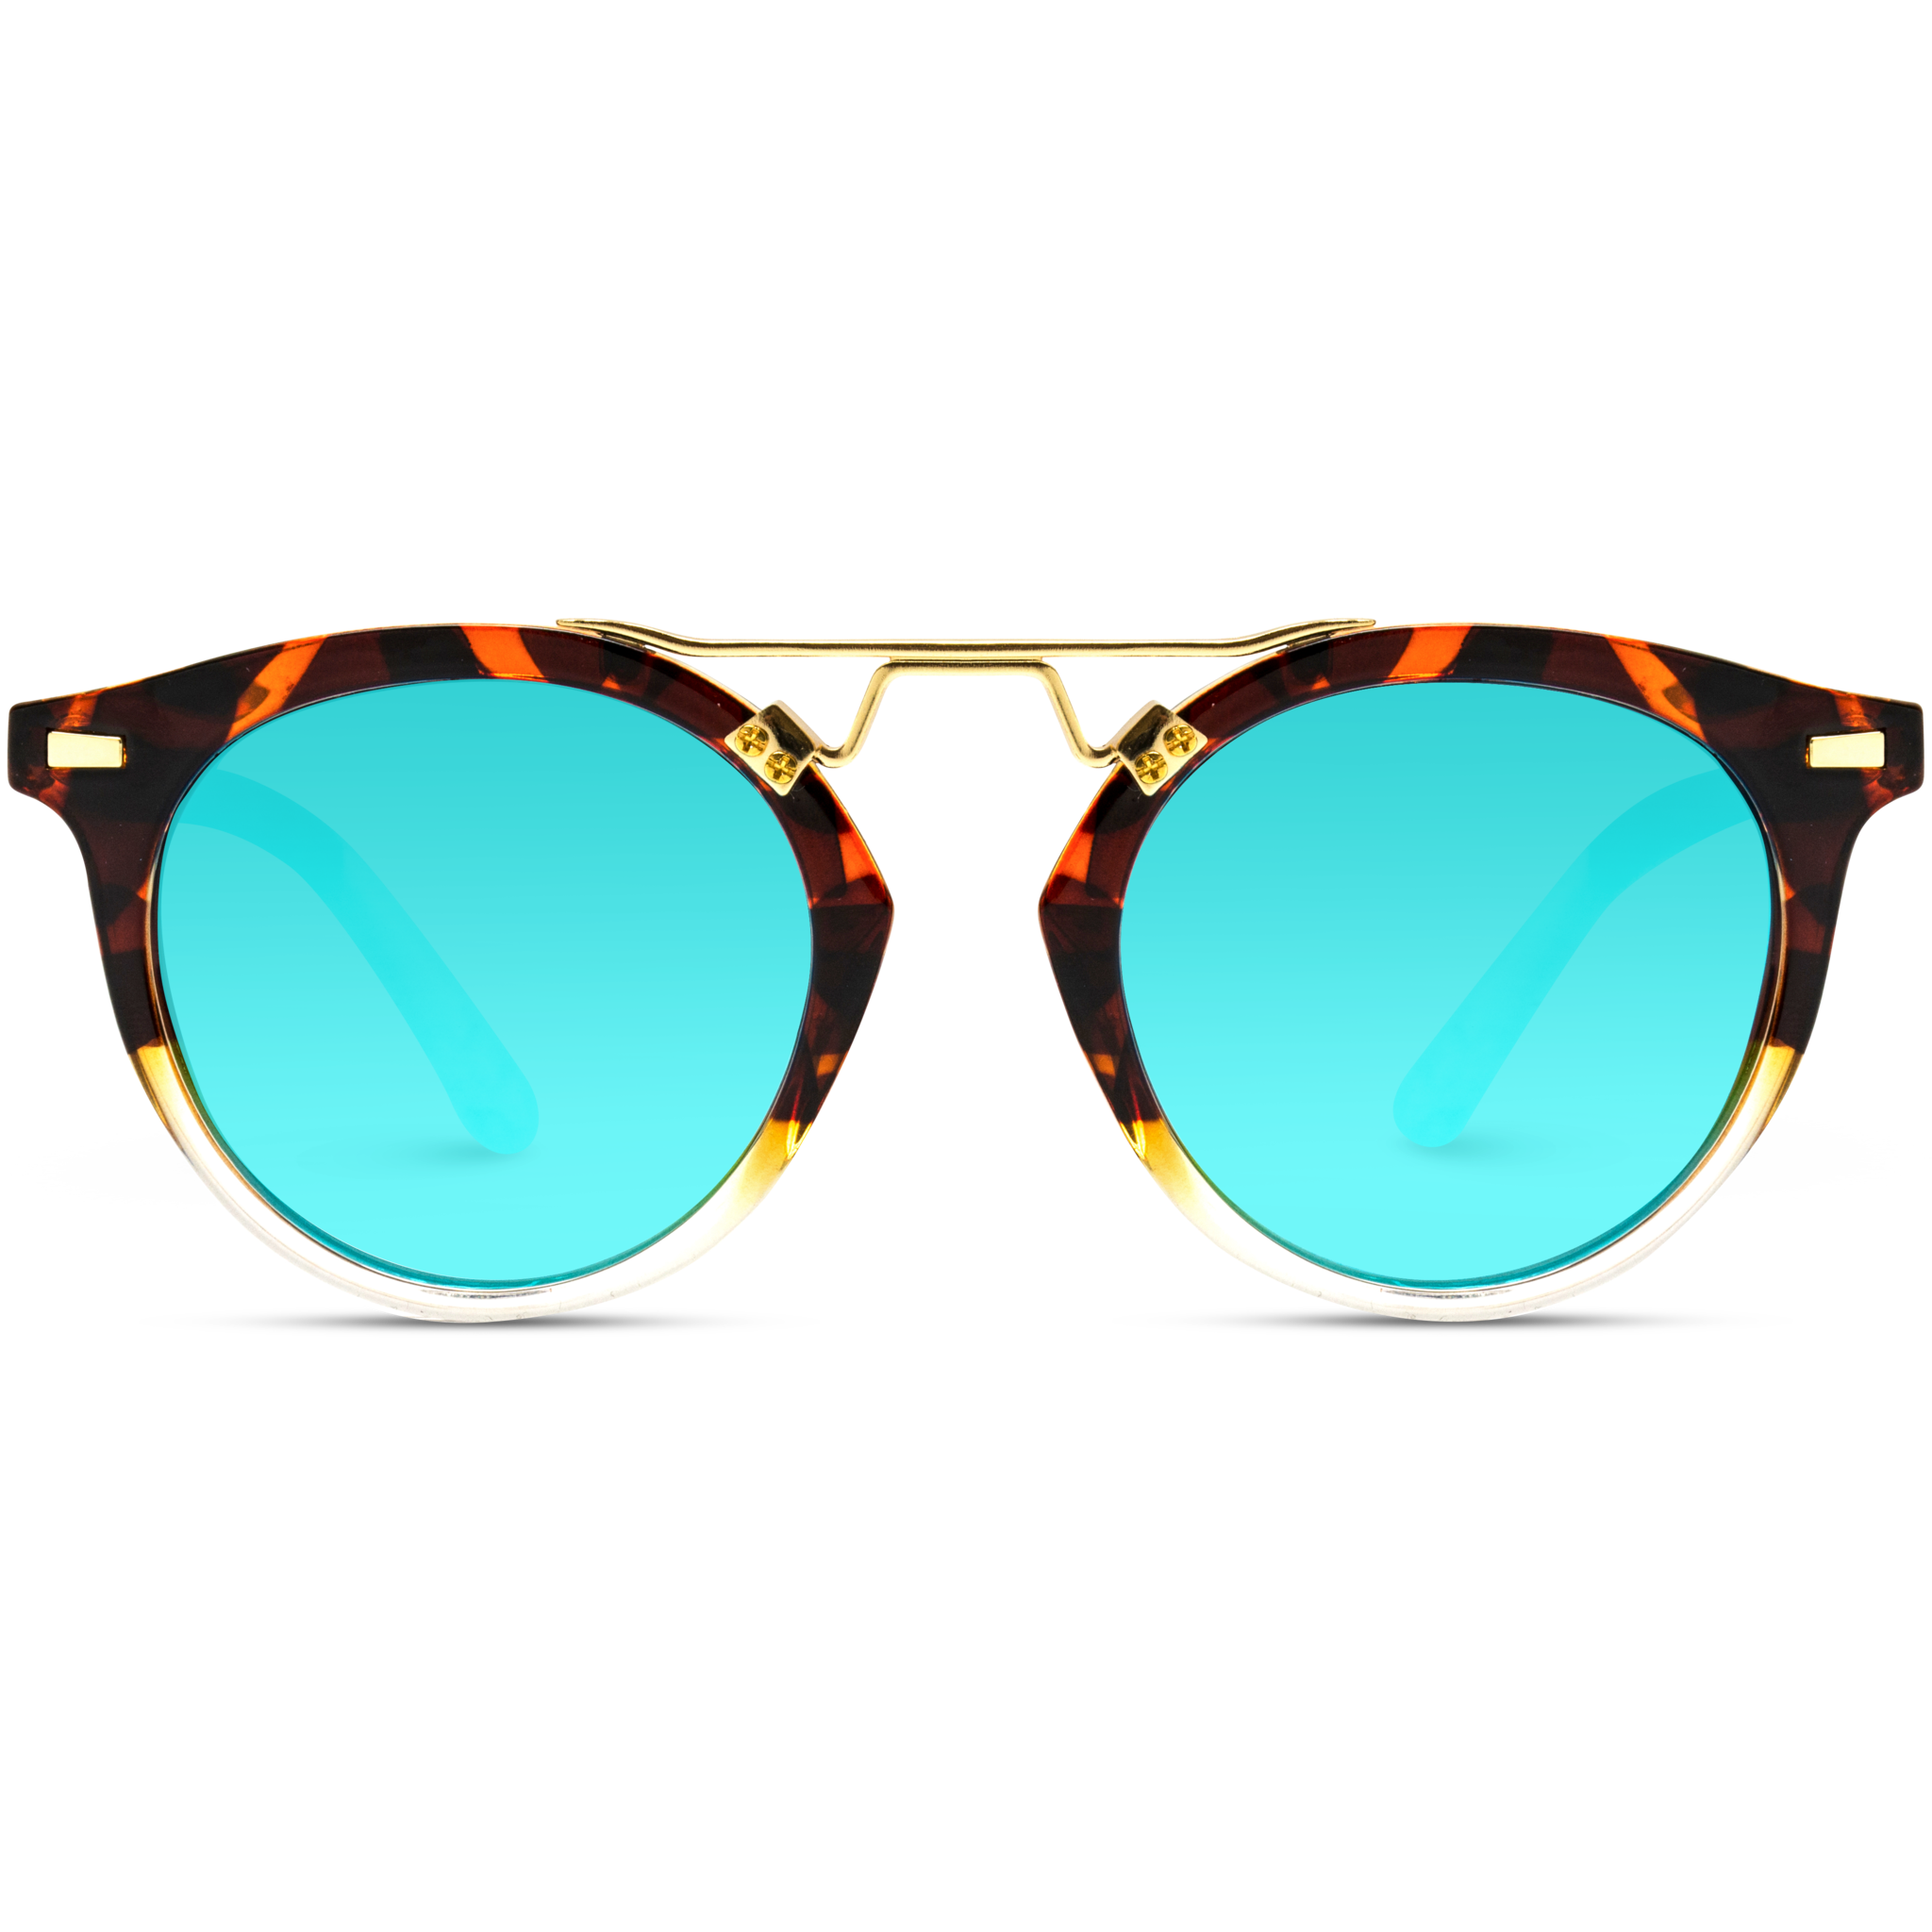 Legendary Tortoise Sunglasses